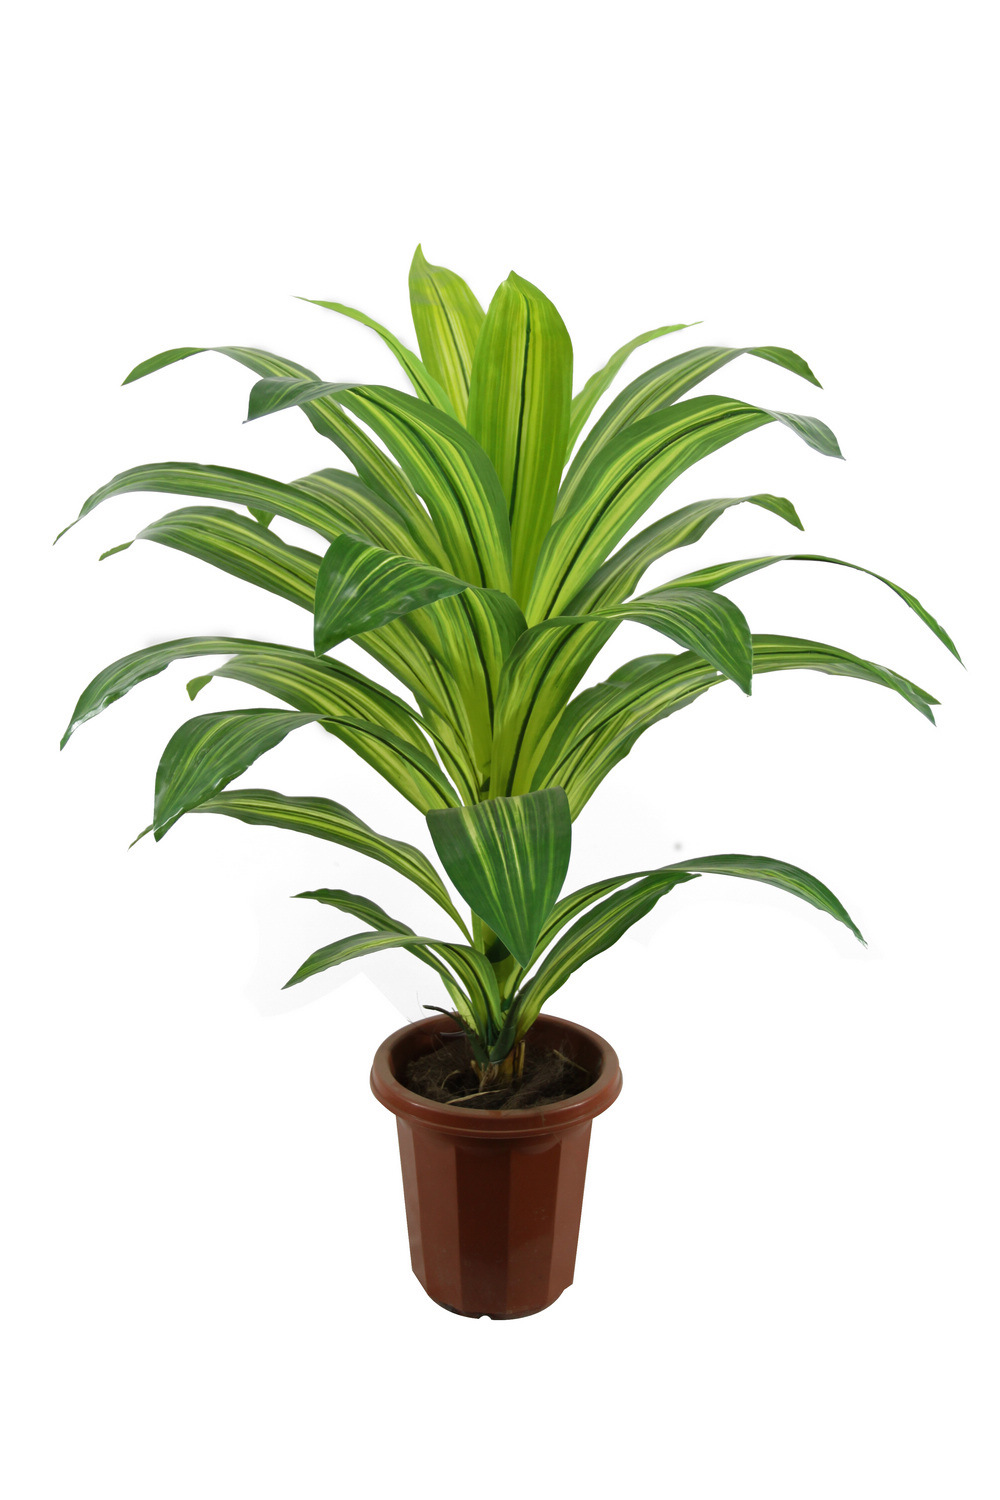 1000 images about houseplant wishlist on pinterest for Maintenance of indoor plants